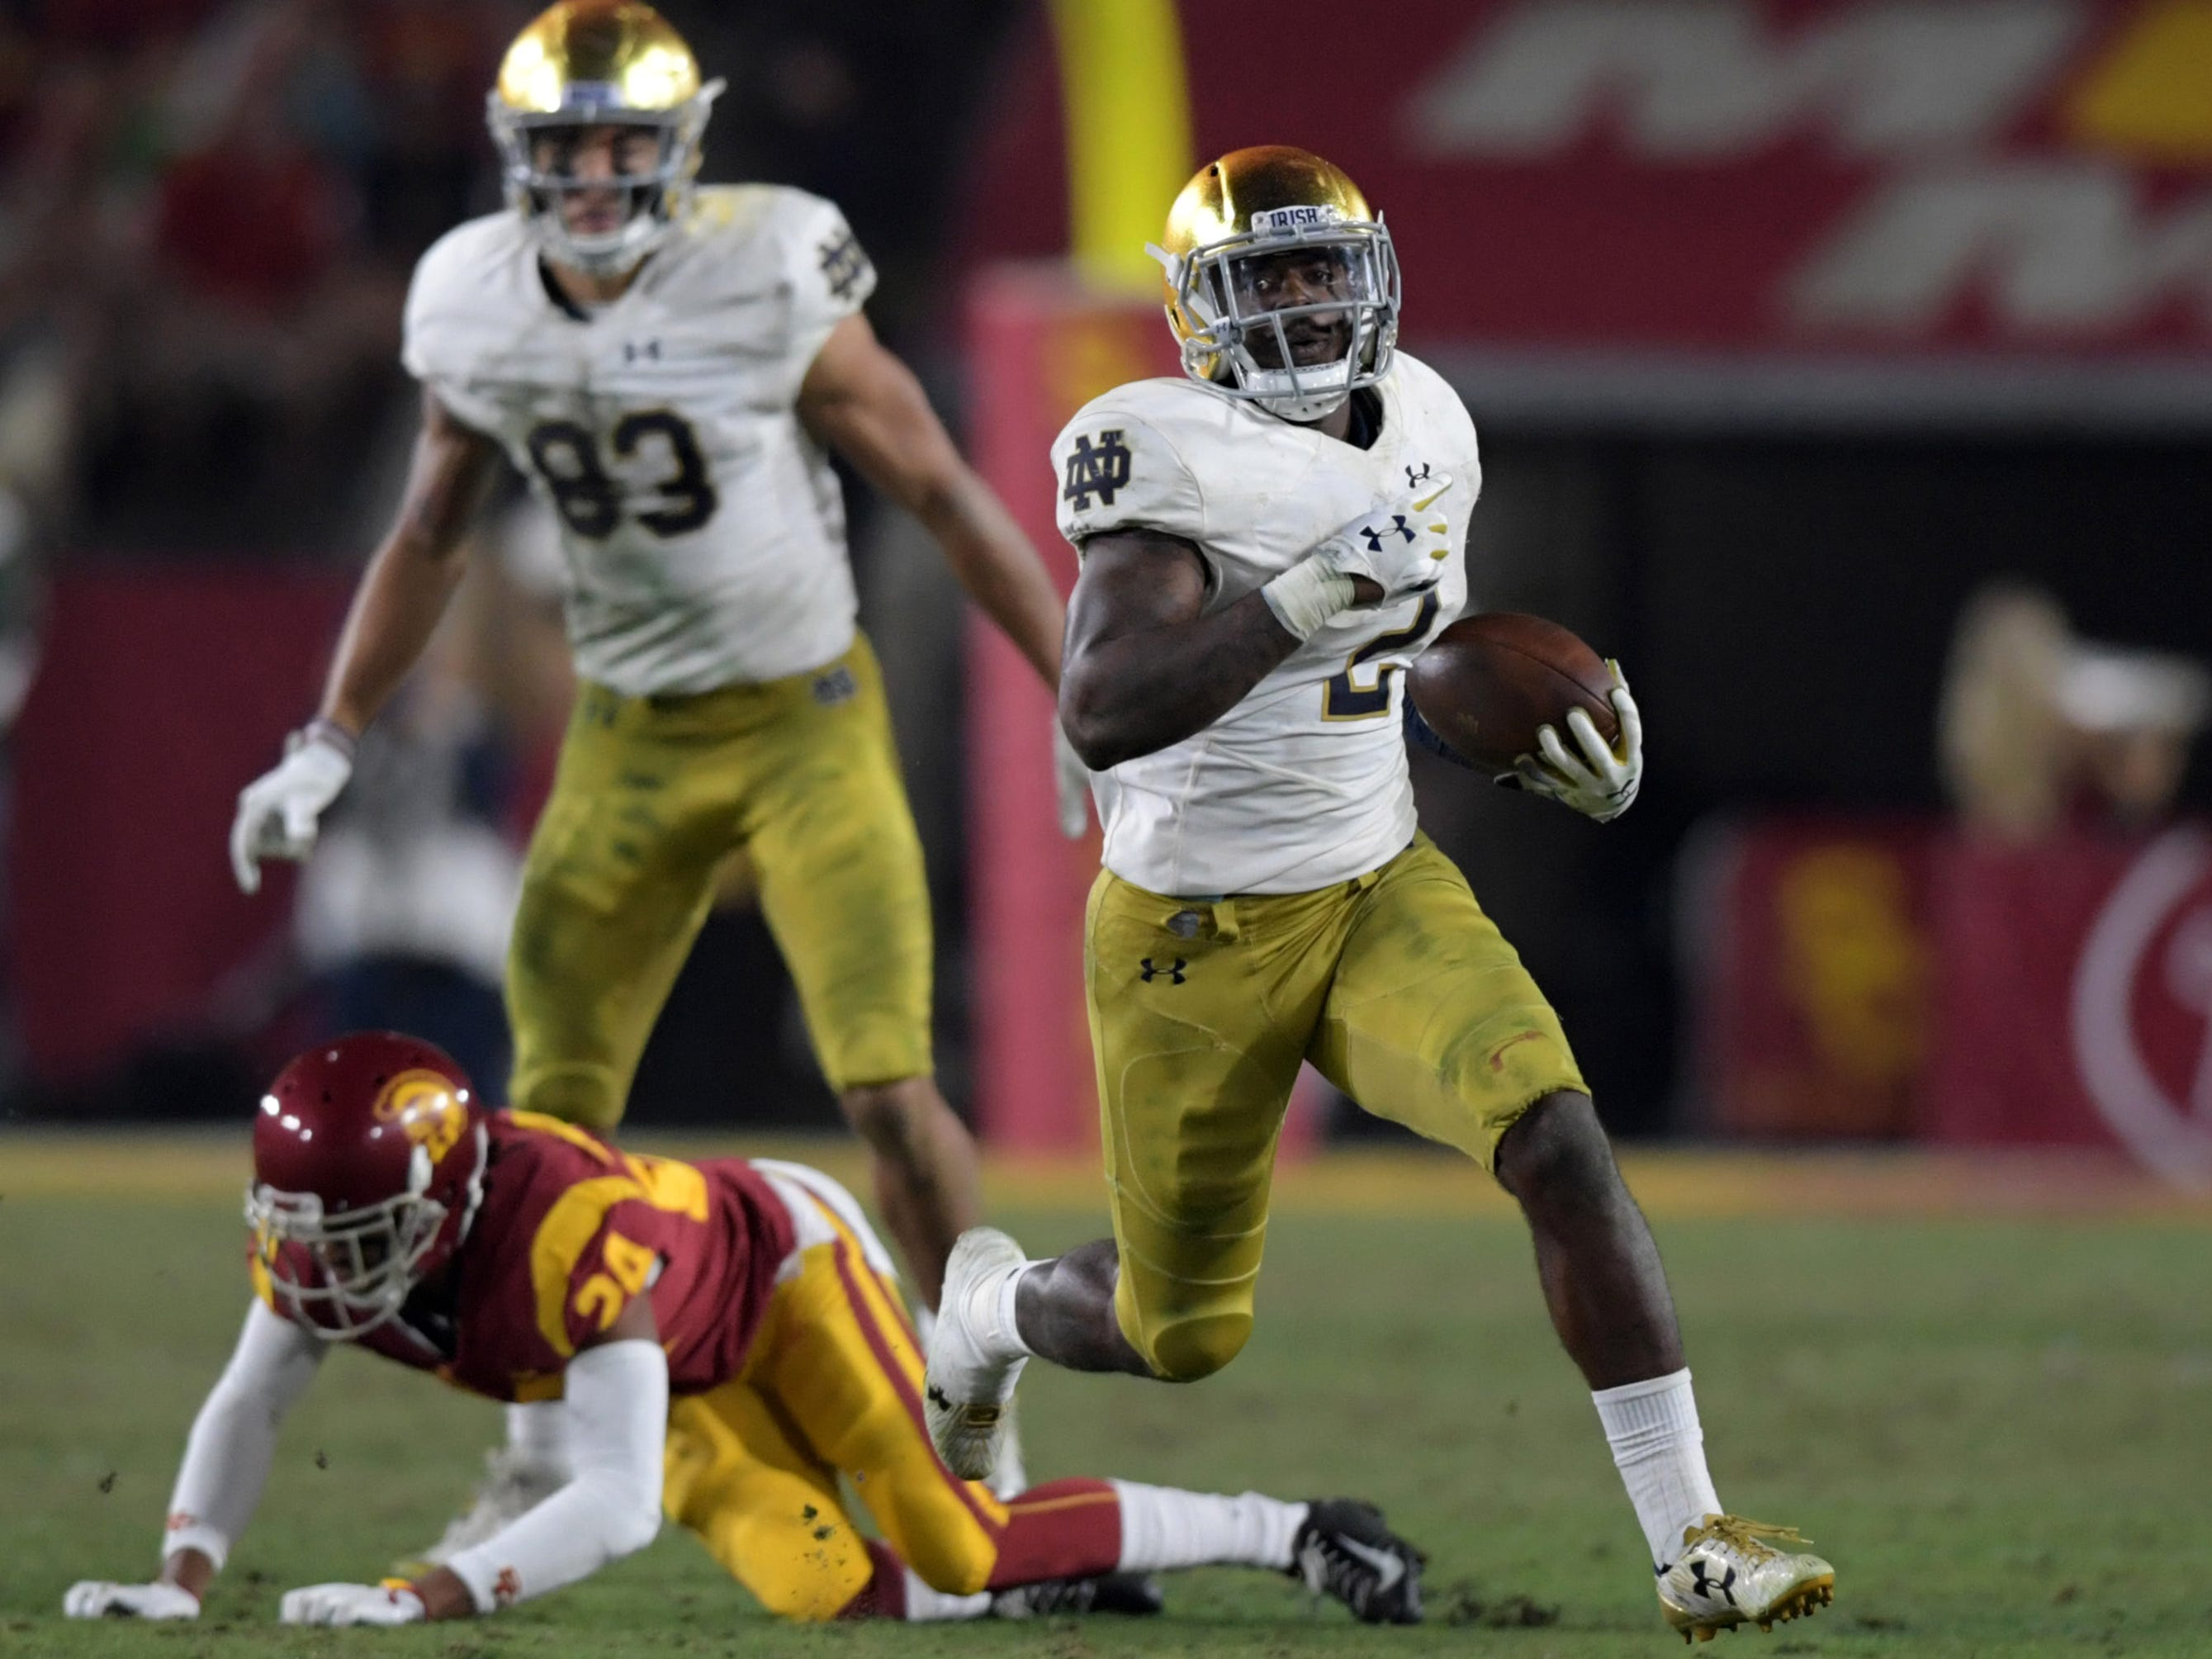 Notre Dame Fighting Irish running back Dexter Williams (2) scores on a 52-yard touchdown run in the third quarter against the Southern California Trojans at Los Angeles Memorial Coliseum.